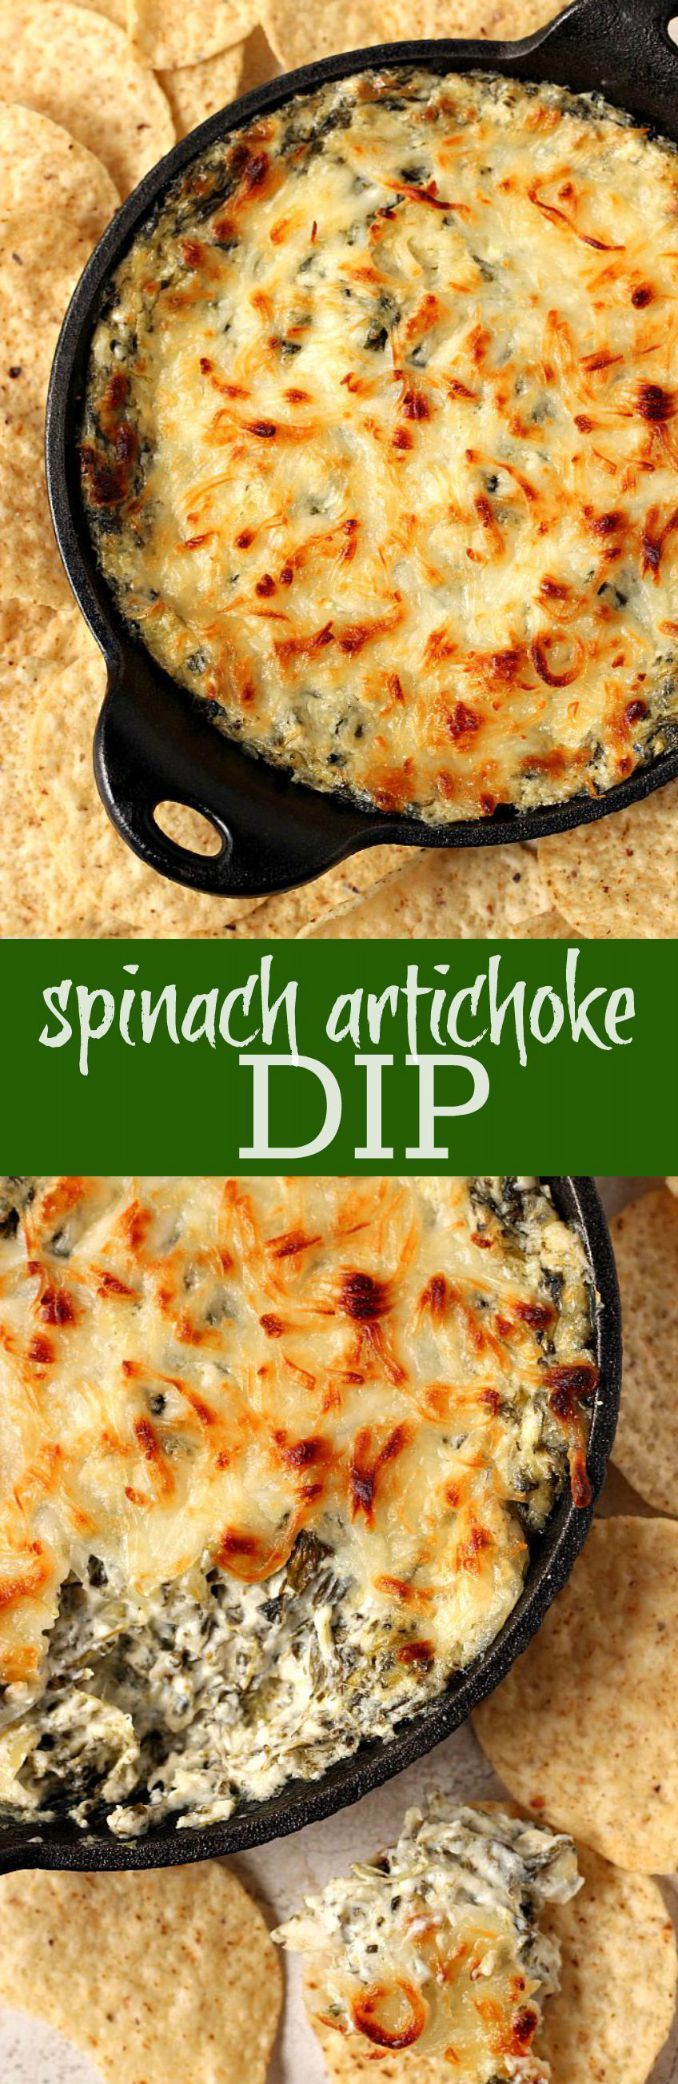 Spinach Artichoke Cheesy Dip - hot and cheesy and everything a good dip should be! This classic is unbeatable and a must make for any party!